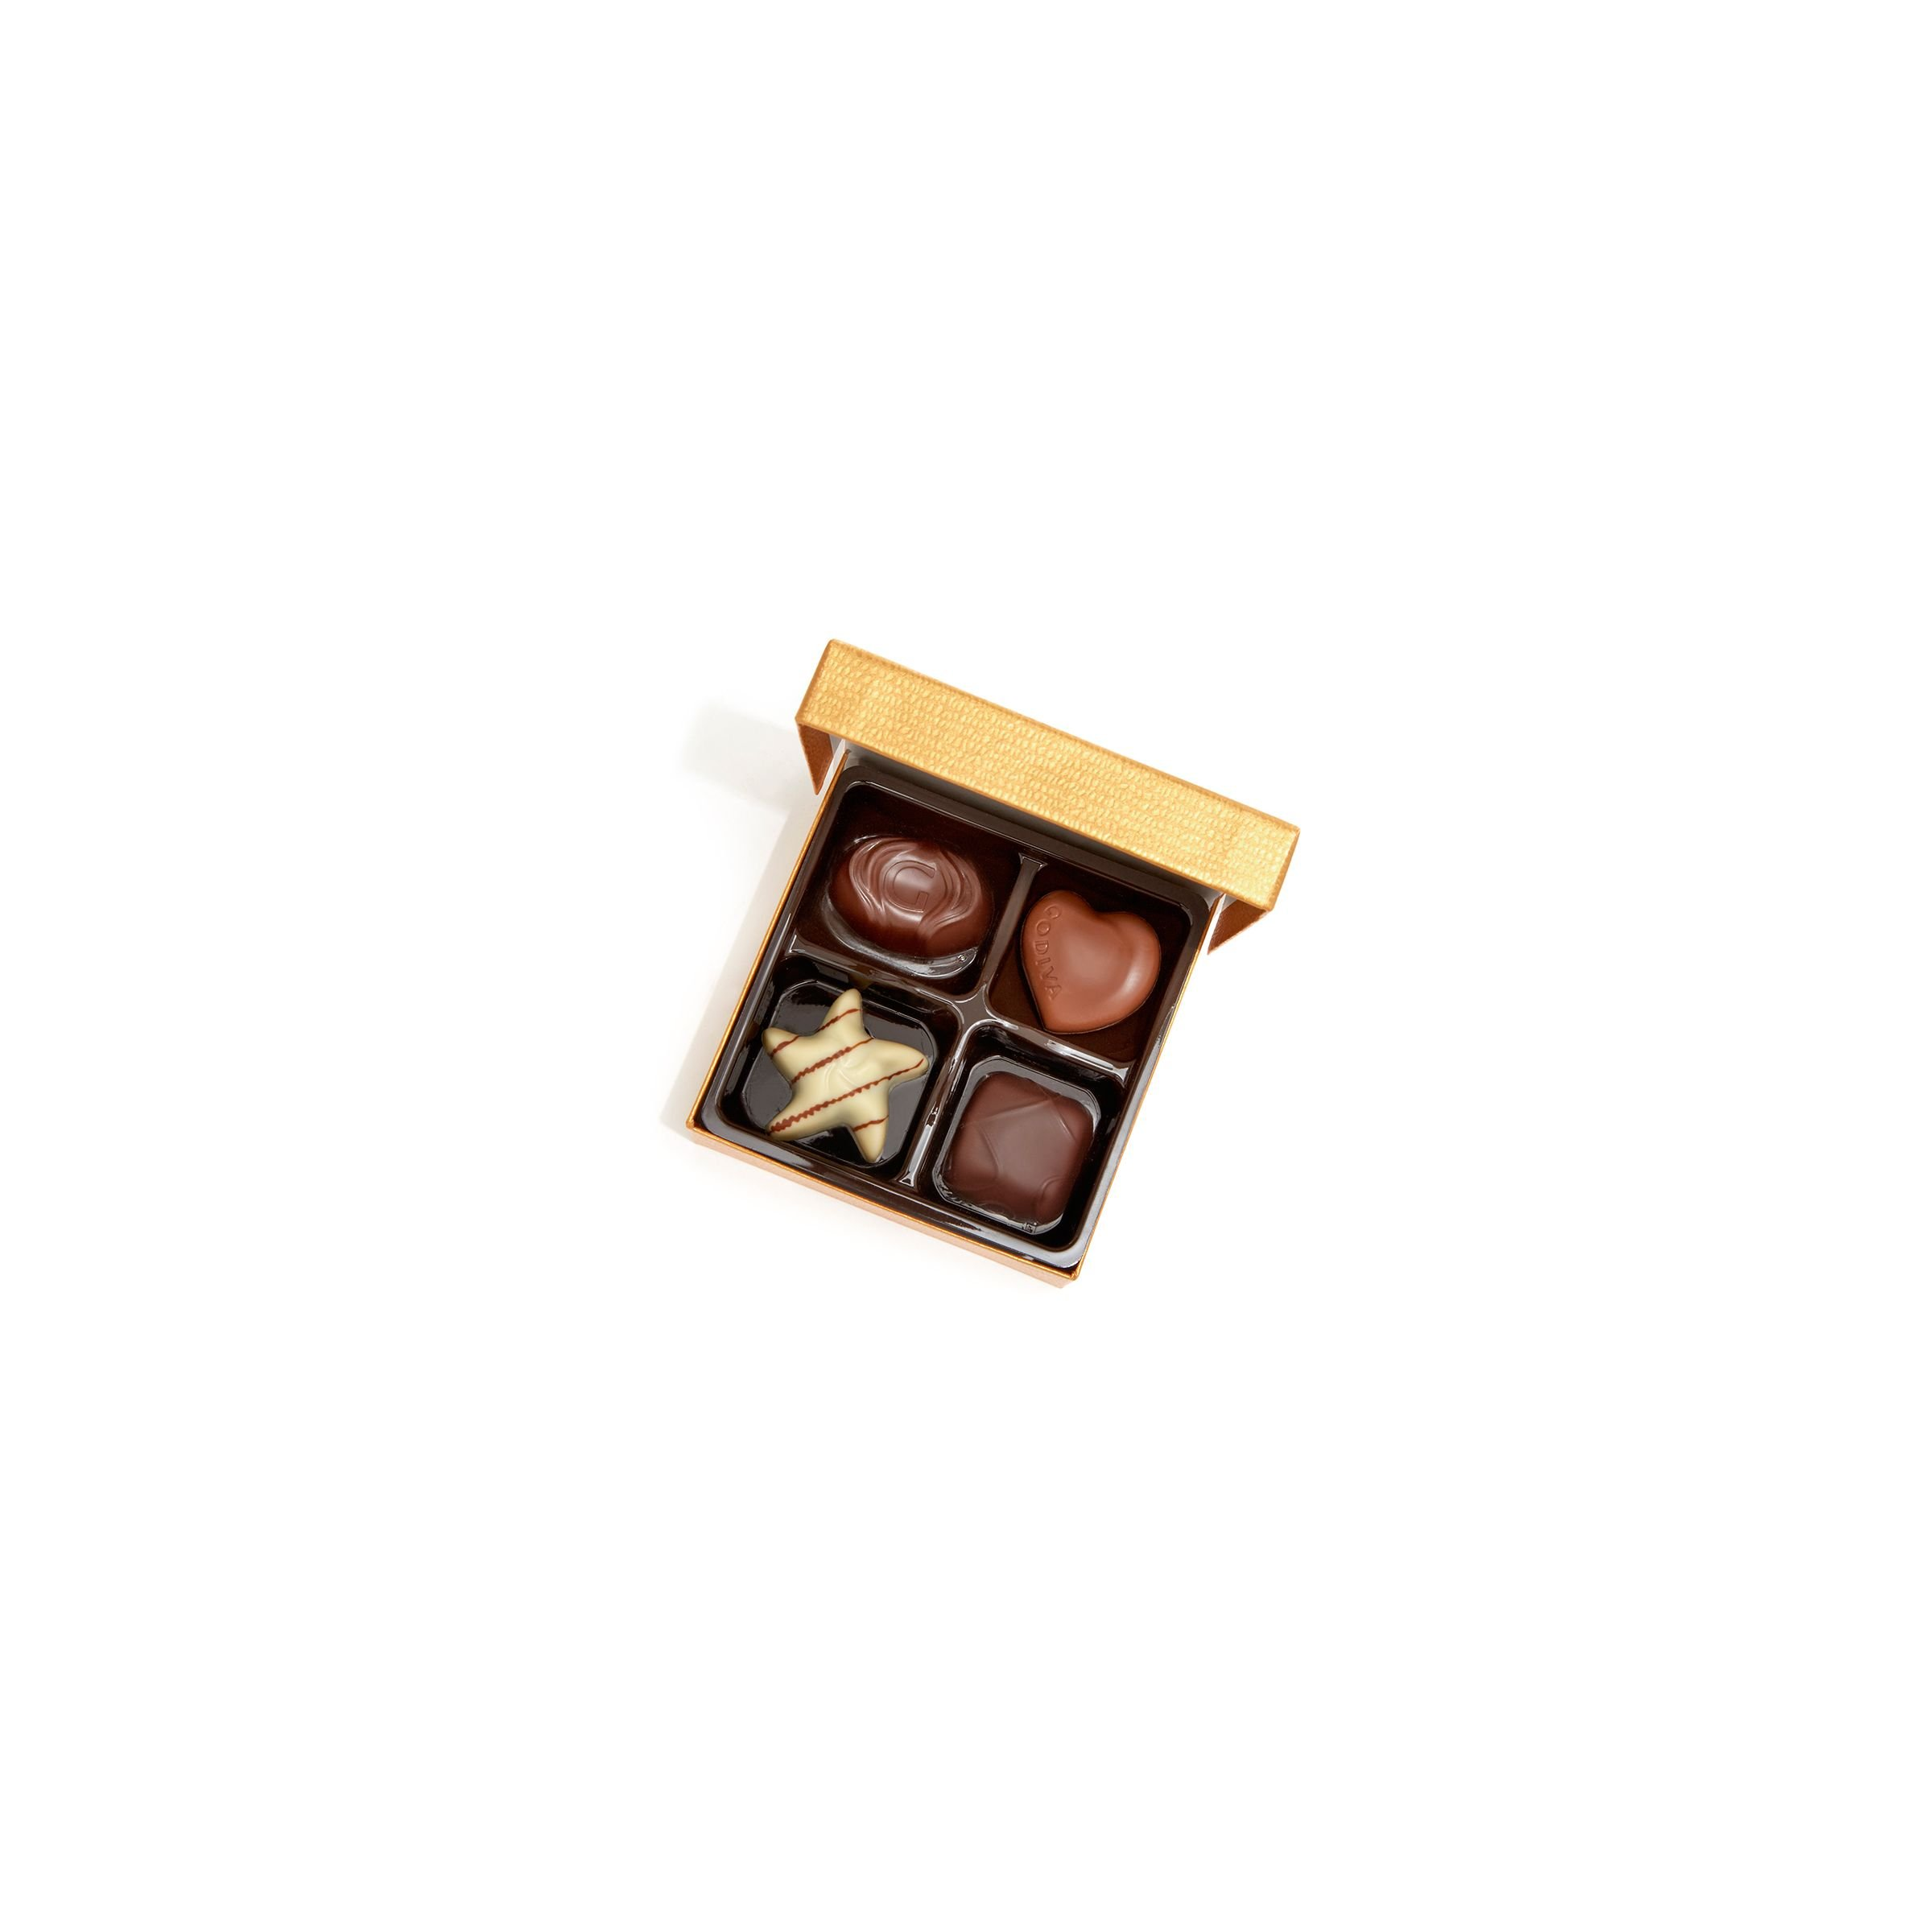 Godiva Chocolatier Chocolate Gold Favor 4 Piece Gift Box, Gold Ribbon, Great as a Gift, Chocolate Birthday Favors, Chocolate Wedding Favors, Chocolate Gift Box, Set of 12 by GODIVA Chocolatier (Image #3)